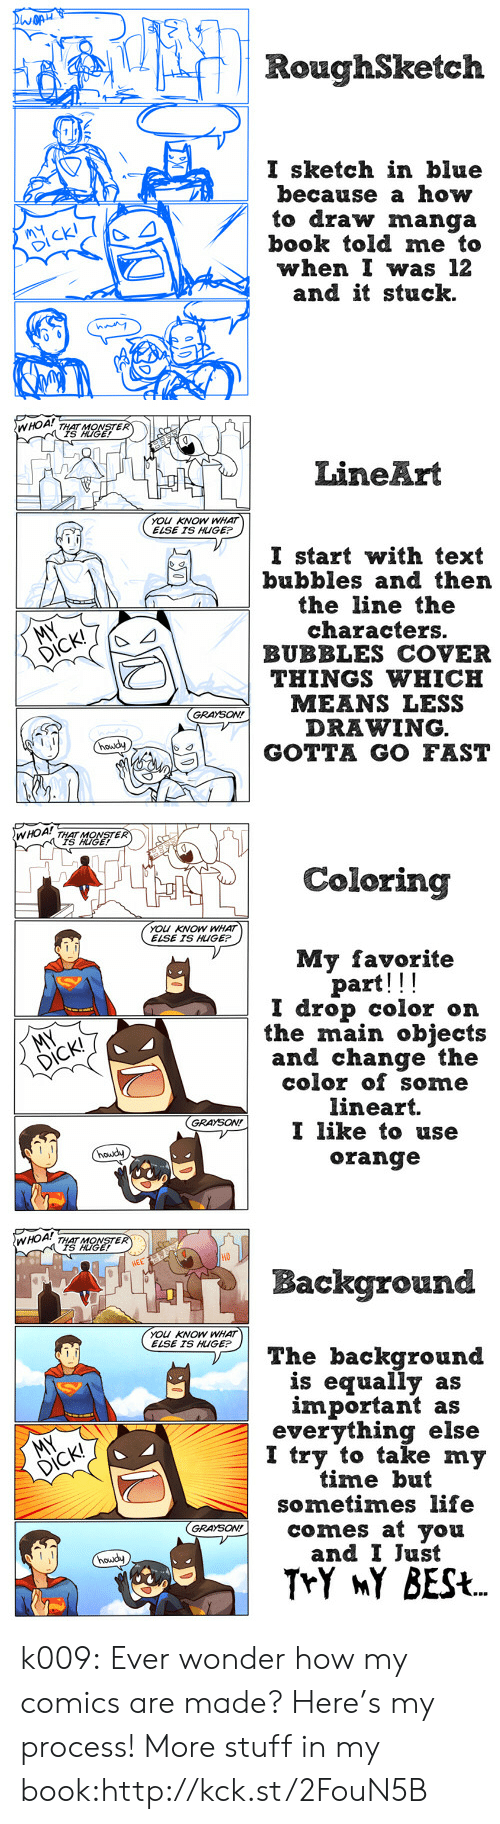 gotta go fast: RoughSketch  I sketch in blue  because a how  to draw manga  book told me to  when I was 12  and it stuck.   TER  LineArt  YOU KNOW WHAT  ELSE TS HUGE  I start with text  bubbles and then  the line the  characters.  BUBBLES COVER  DICK!  THINGS WHICH  GRAYSON!  DRAWING  6s A | GOTTA GO FAST   rK THAT MONSTER  IS KIGE!  Coloring  You KNOW WHAT  ELSE IS HUGEP  My favorite  part!!!  I drop color on  the main objects  and change the  color of some  lineart.  GSONI like to use  orange   но  Background  YOu KNOW WHAT  ELSE IS HUGEP  The background  is equally as  important as  everything else  I try to take my  time but  sometimes life  mgo comes at you  and I Just  nowdy k009: Ever wonder how my comics are made? Here's my process! More stuff in my book:http://kck.st/2FouN5B